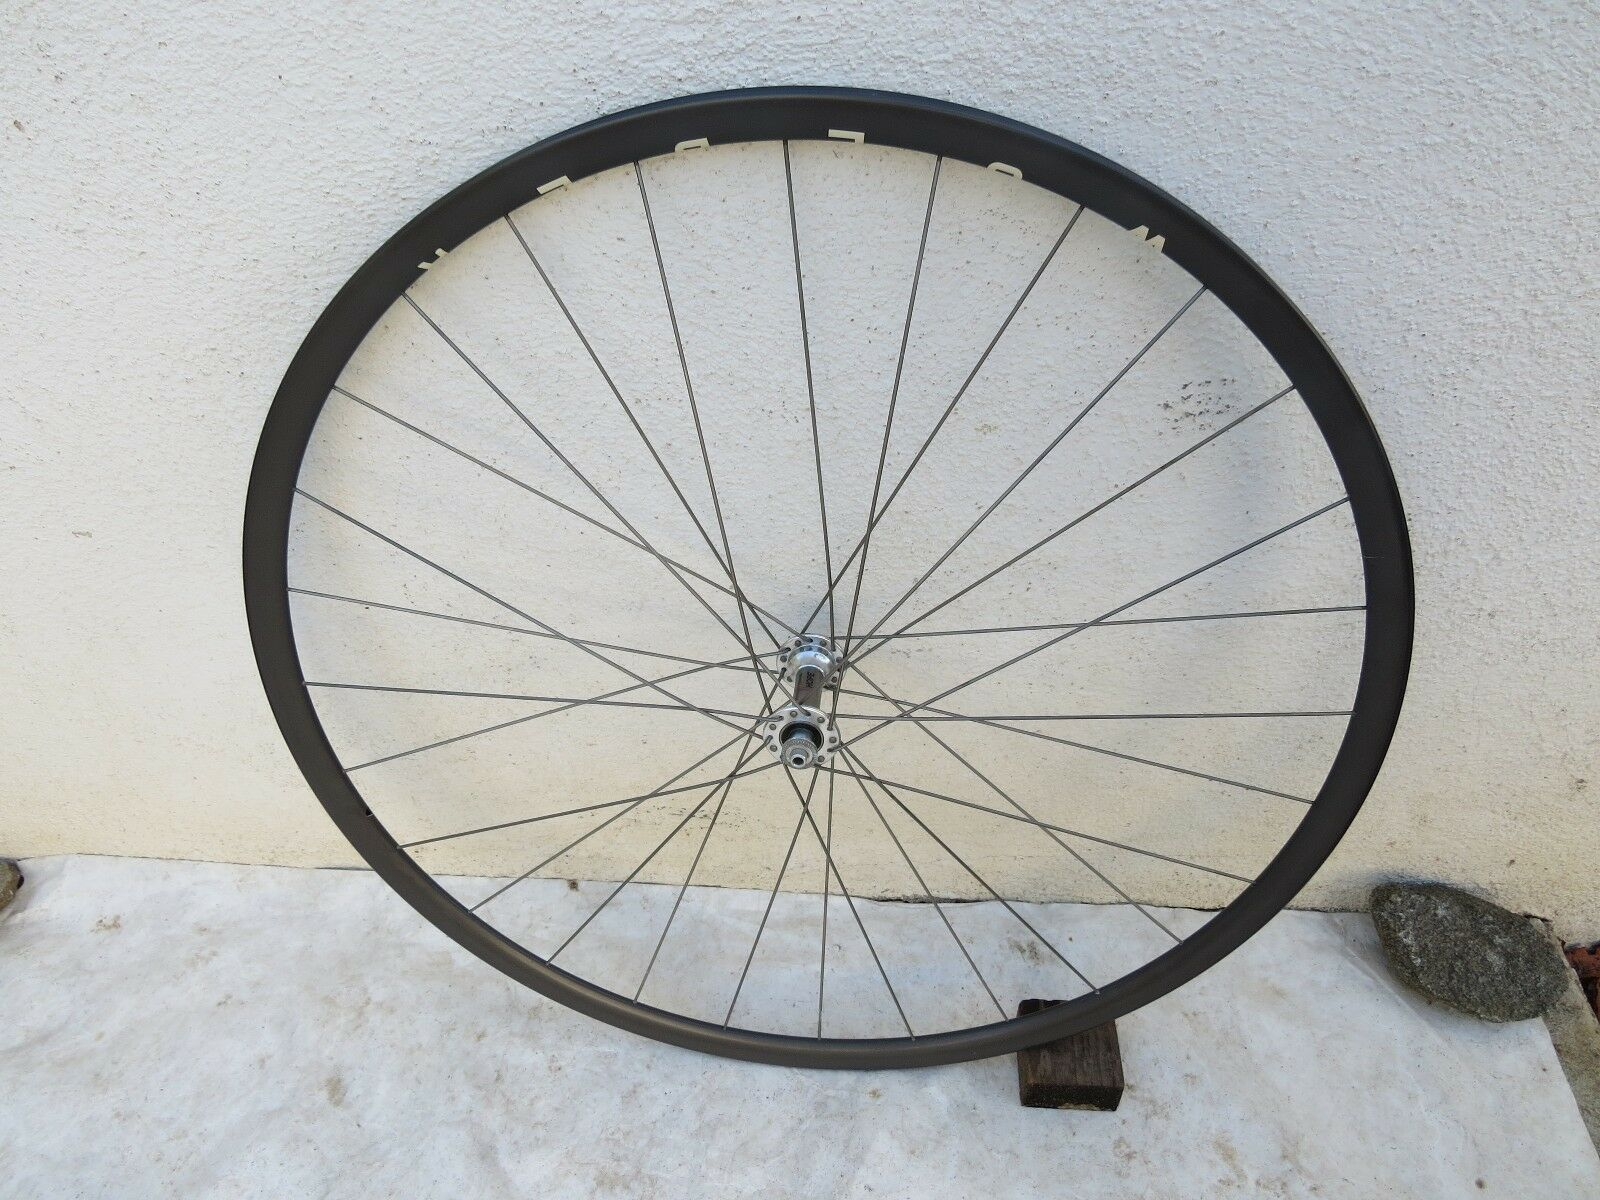 NOS HOPE TITANIUM SPOKES 28 HOLE WOLBER SEW  UP FRONT  ROAD RACING WHEEL VINTAGE  honest service